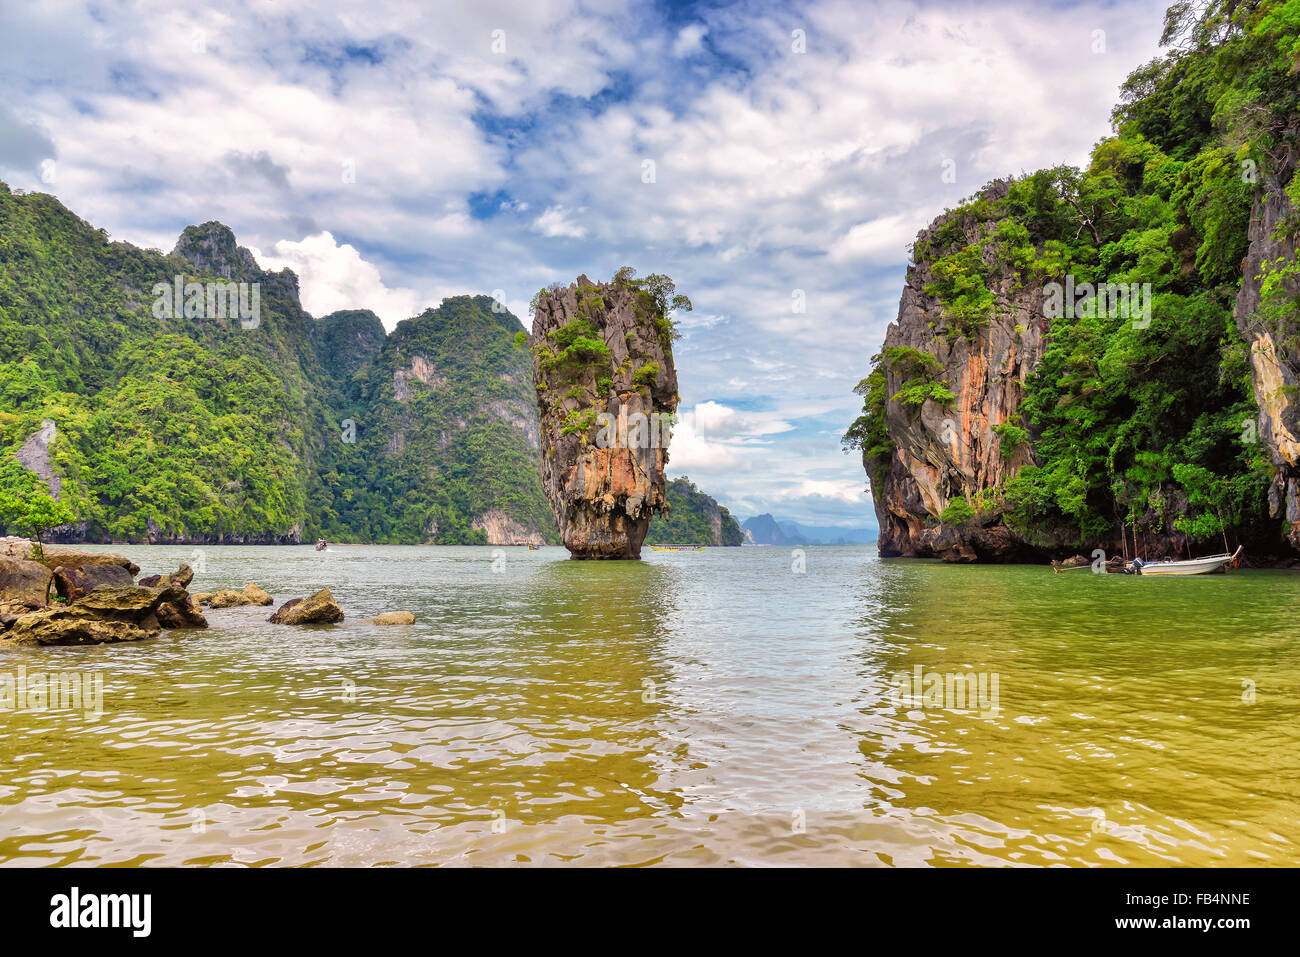 View of nice tropical island in summer environment - Stock Image